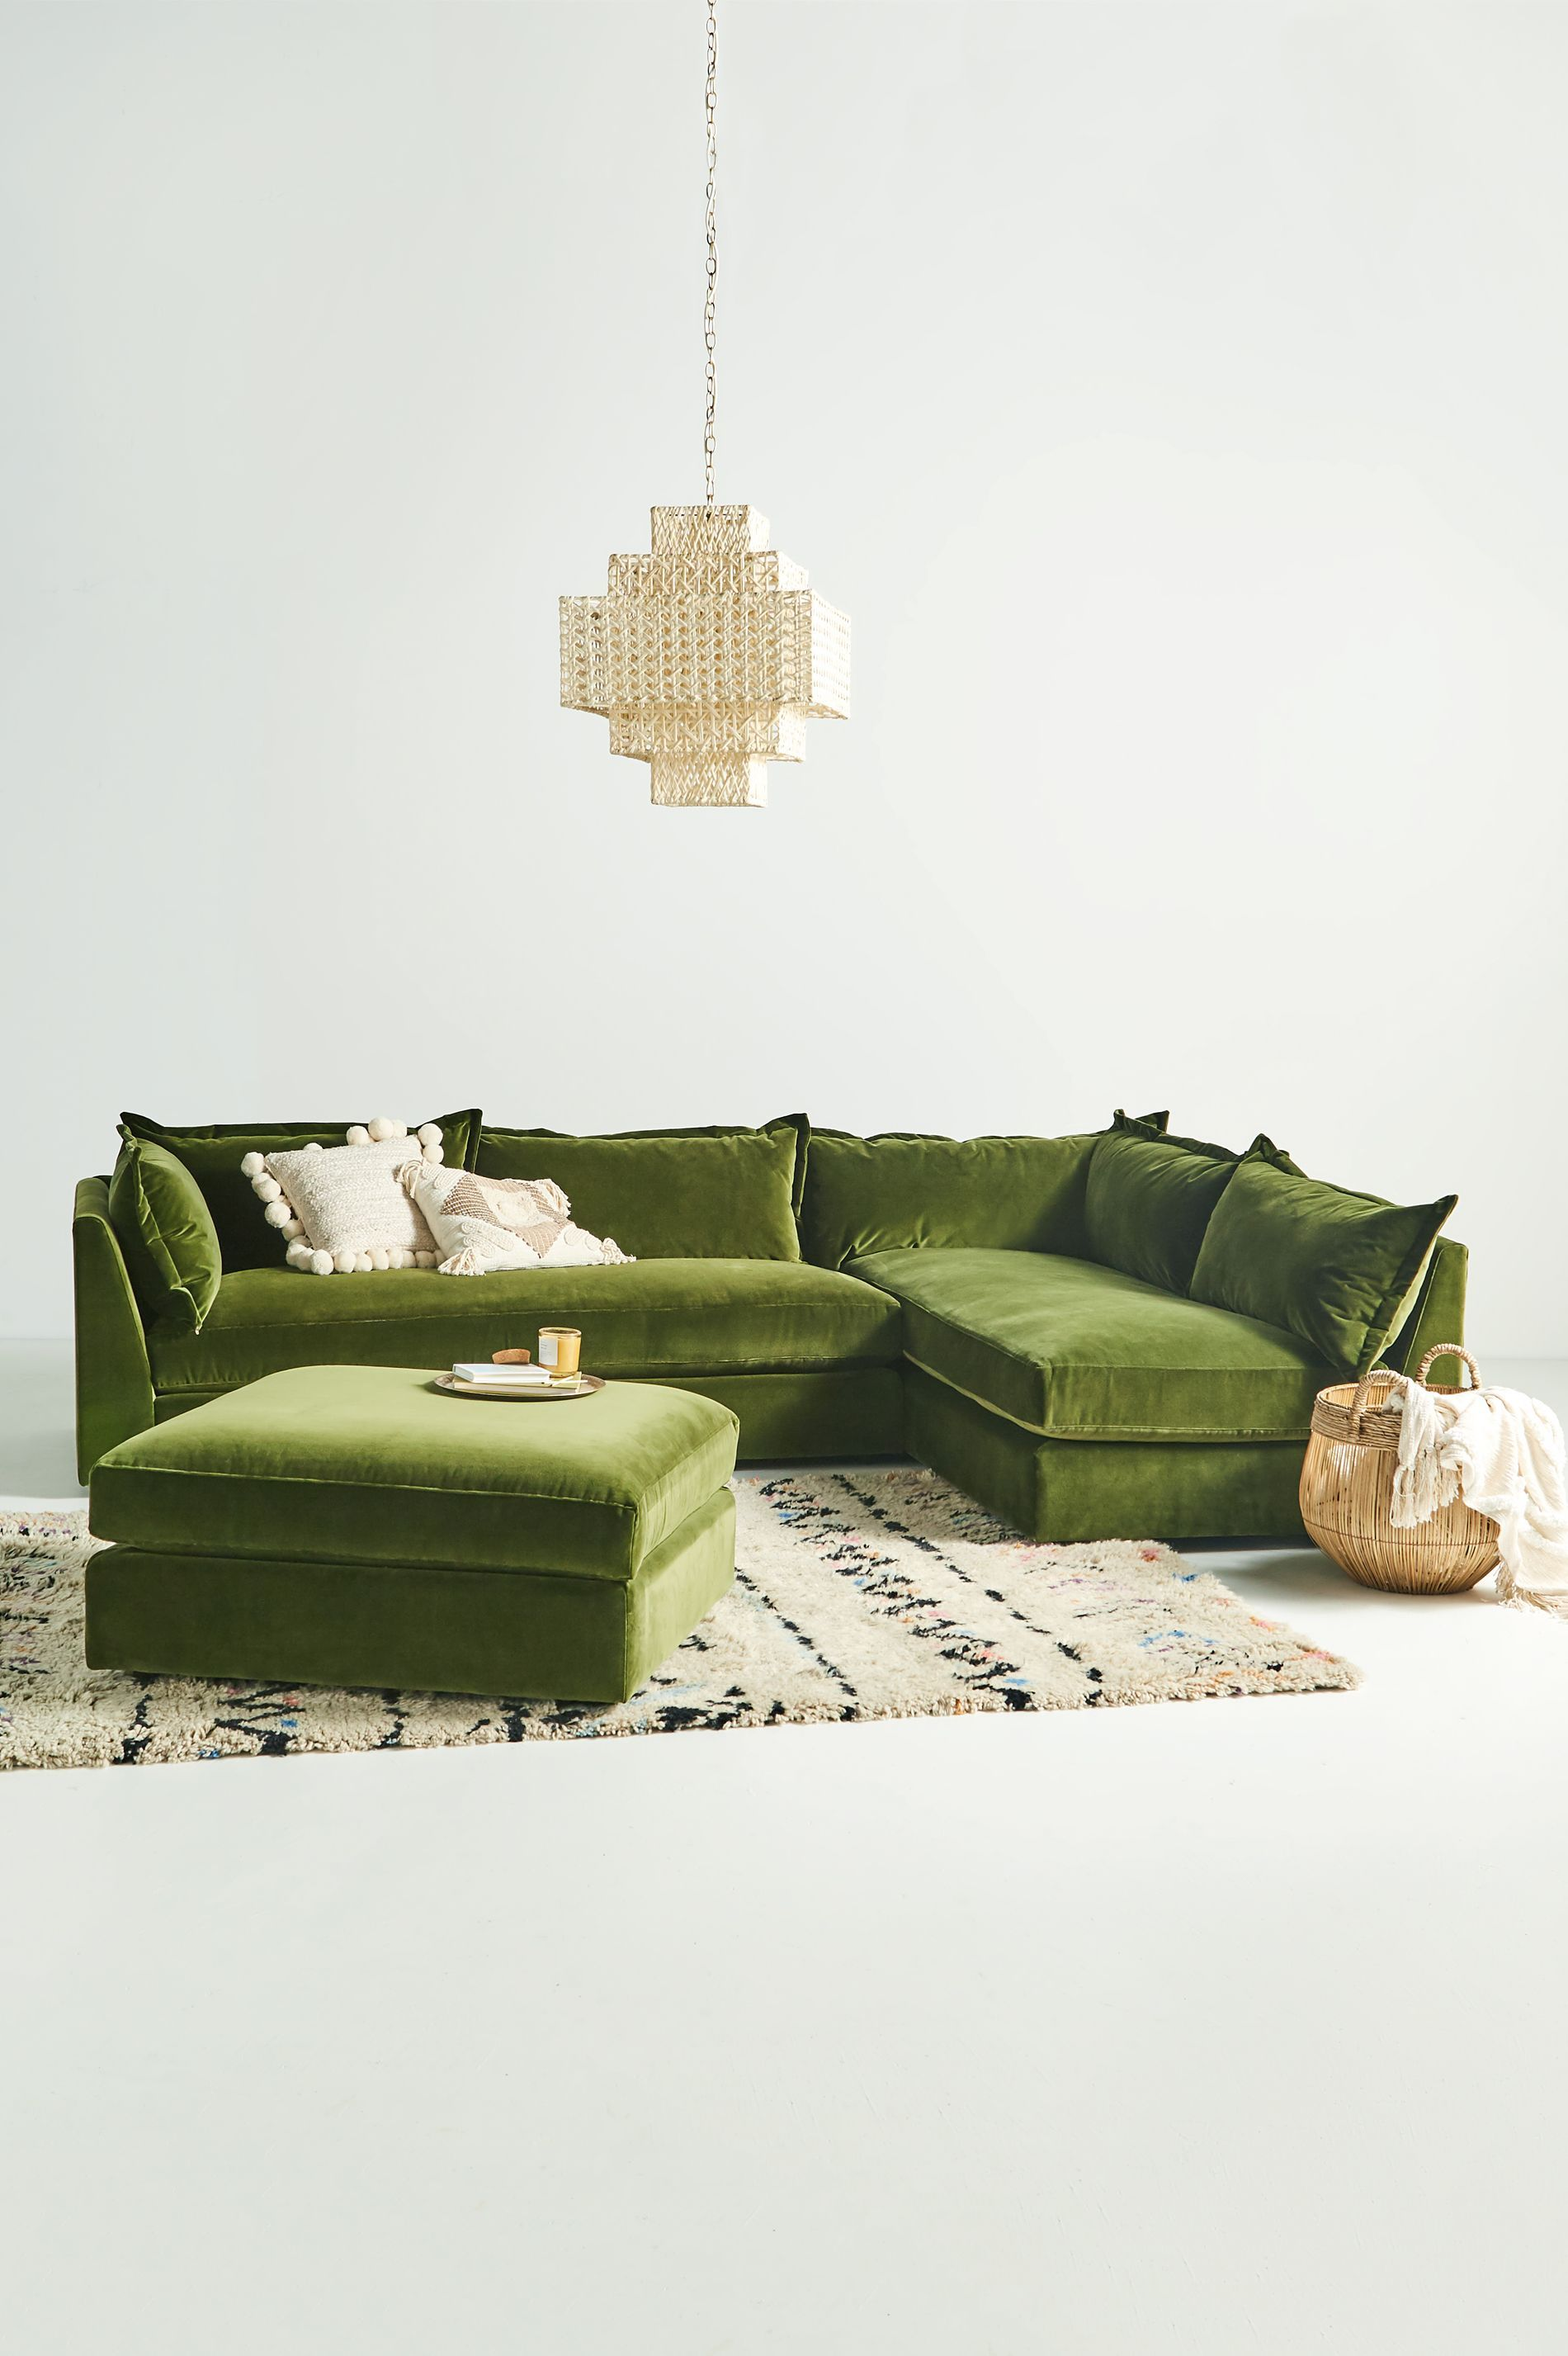 Denver L-Shaped Sectional in 2019 | Livibg room ideas ...